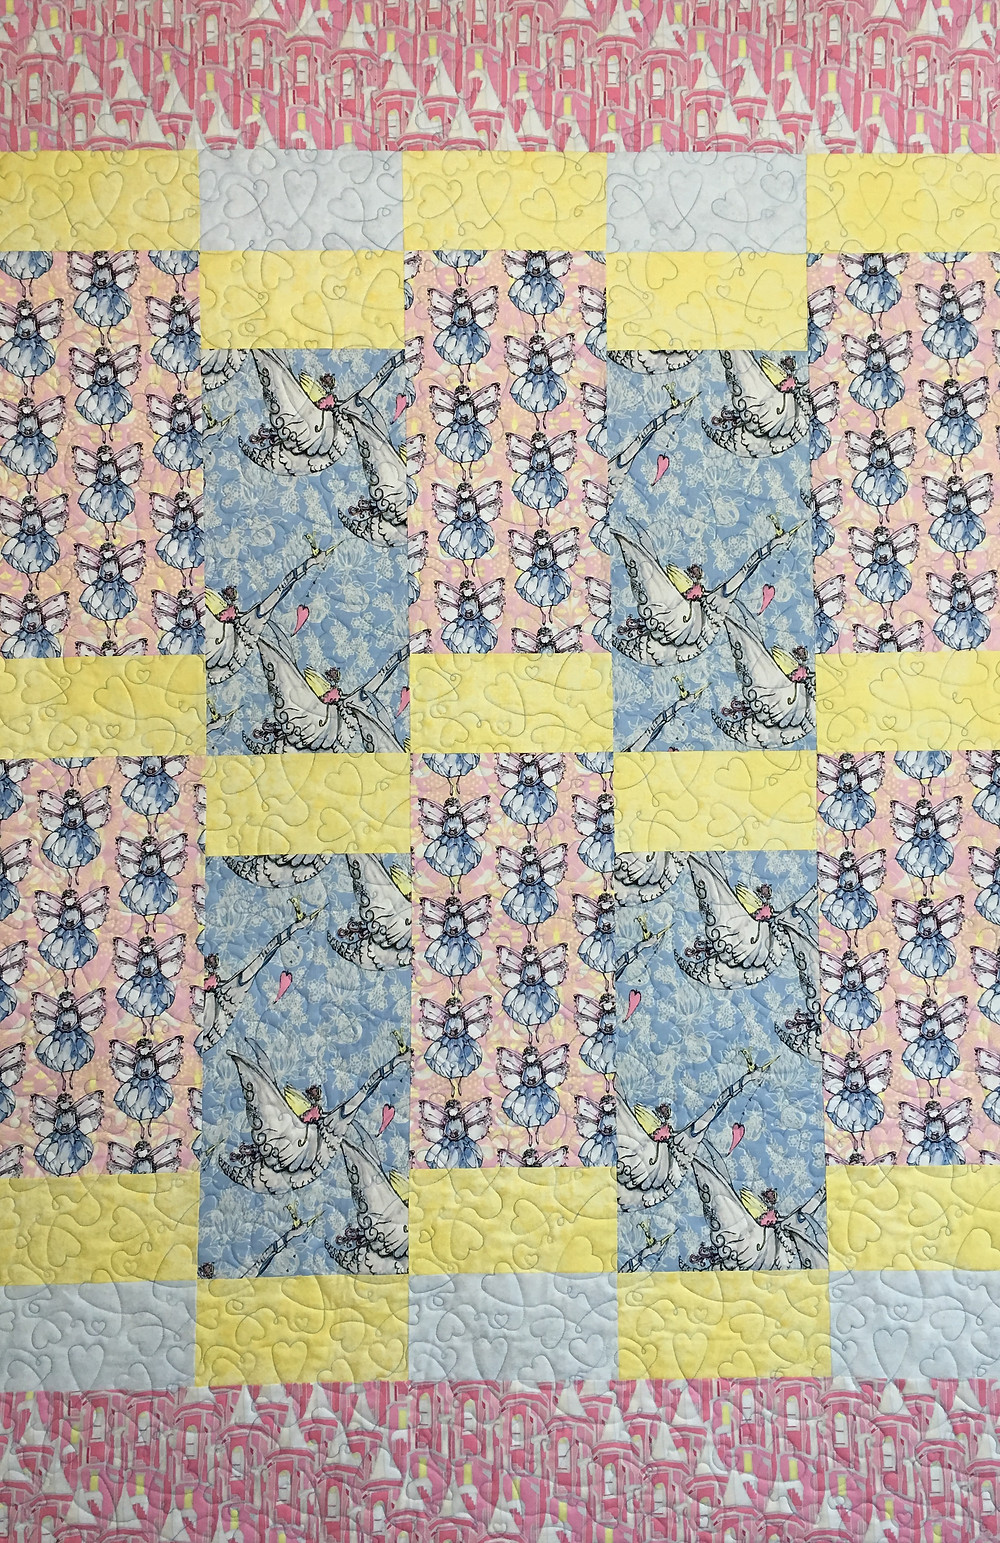 Little Angels Quilt by Nancy Nesbaum